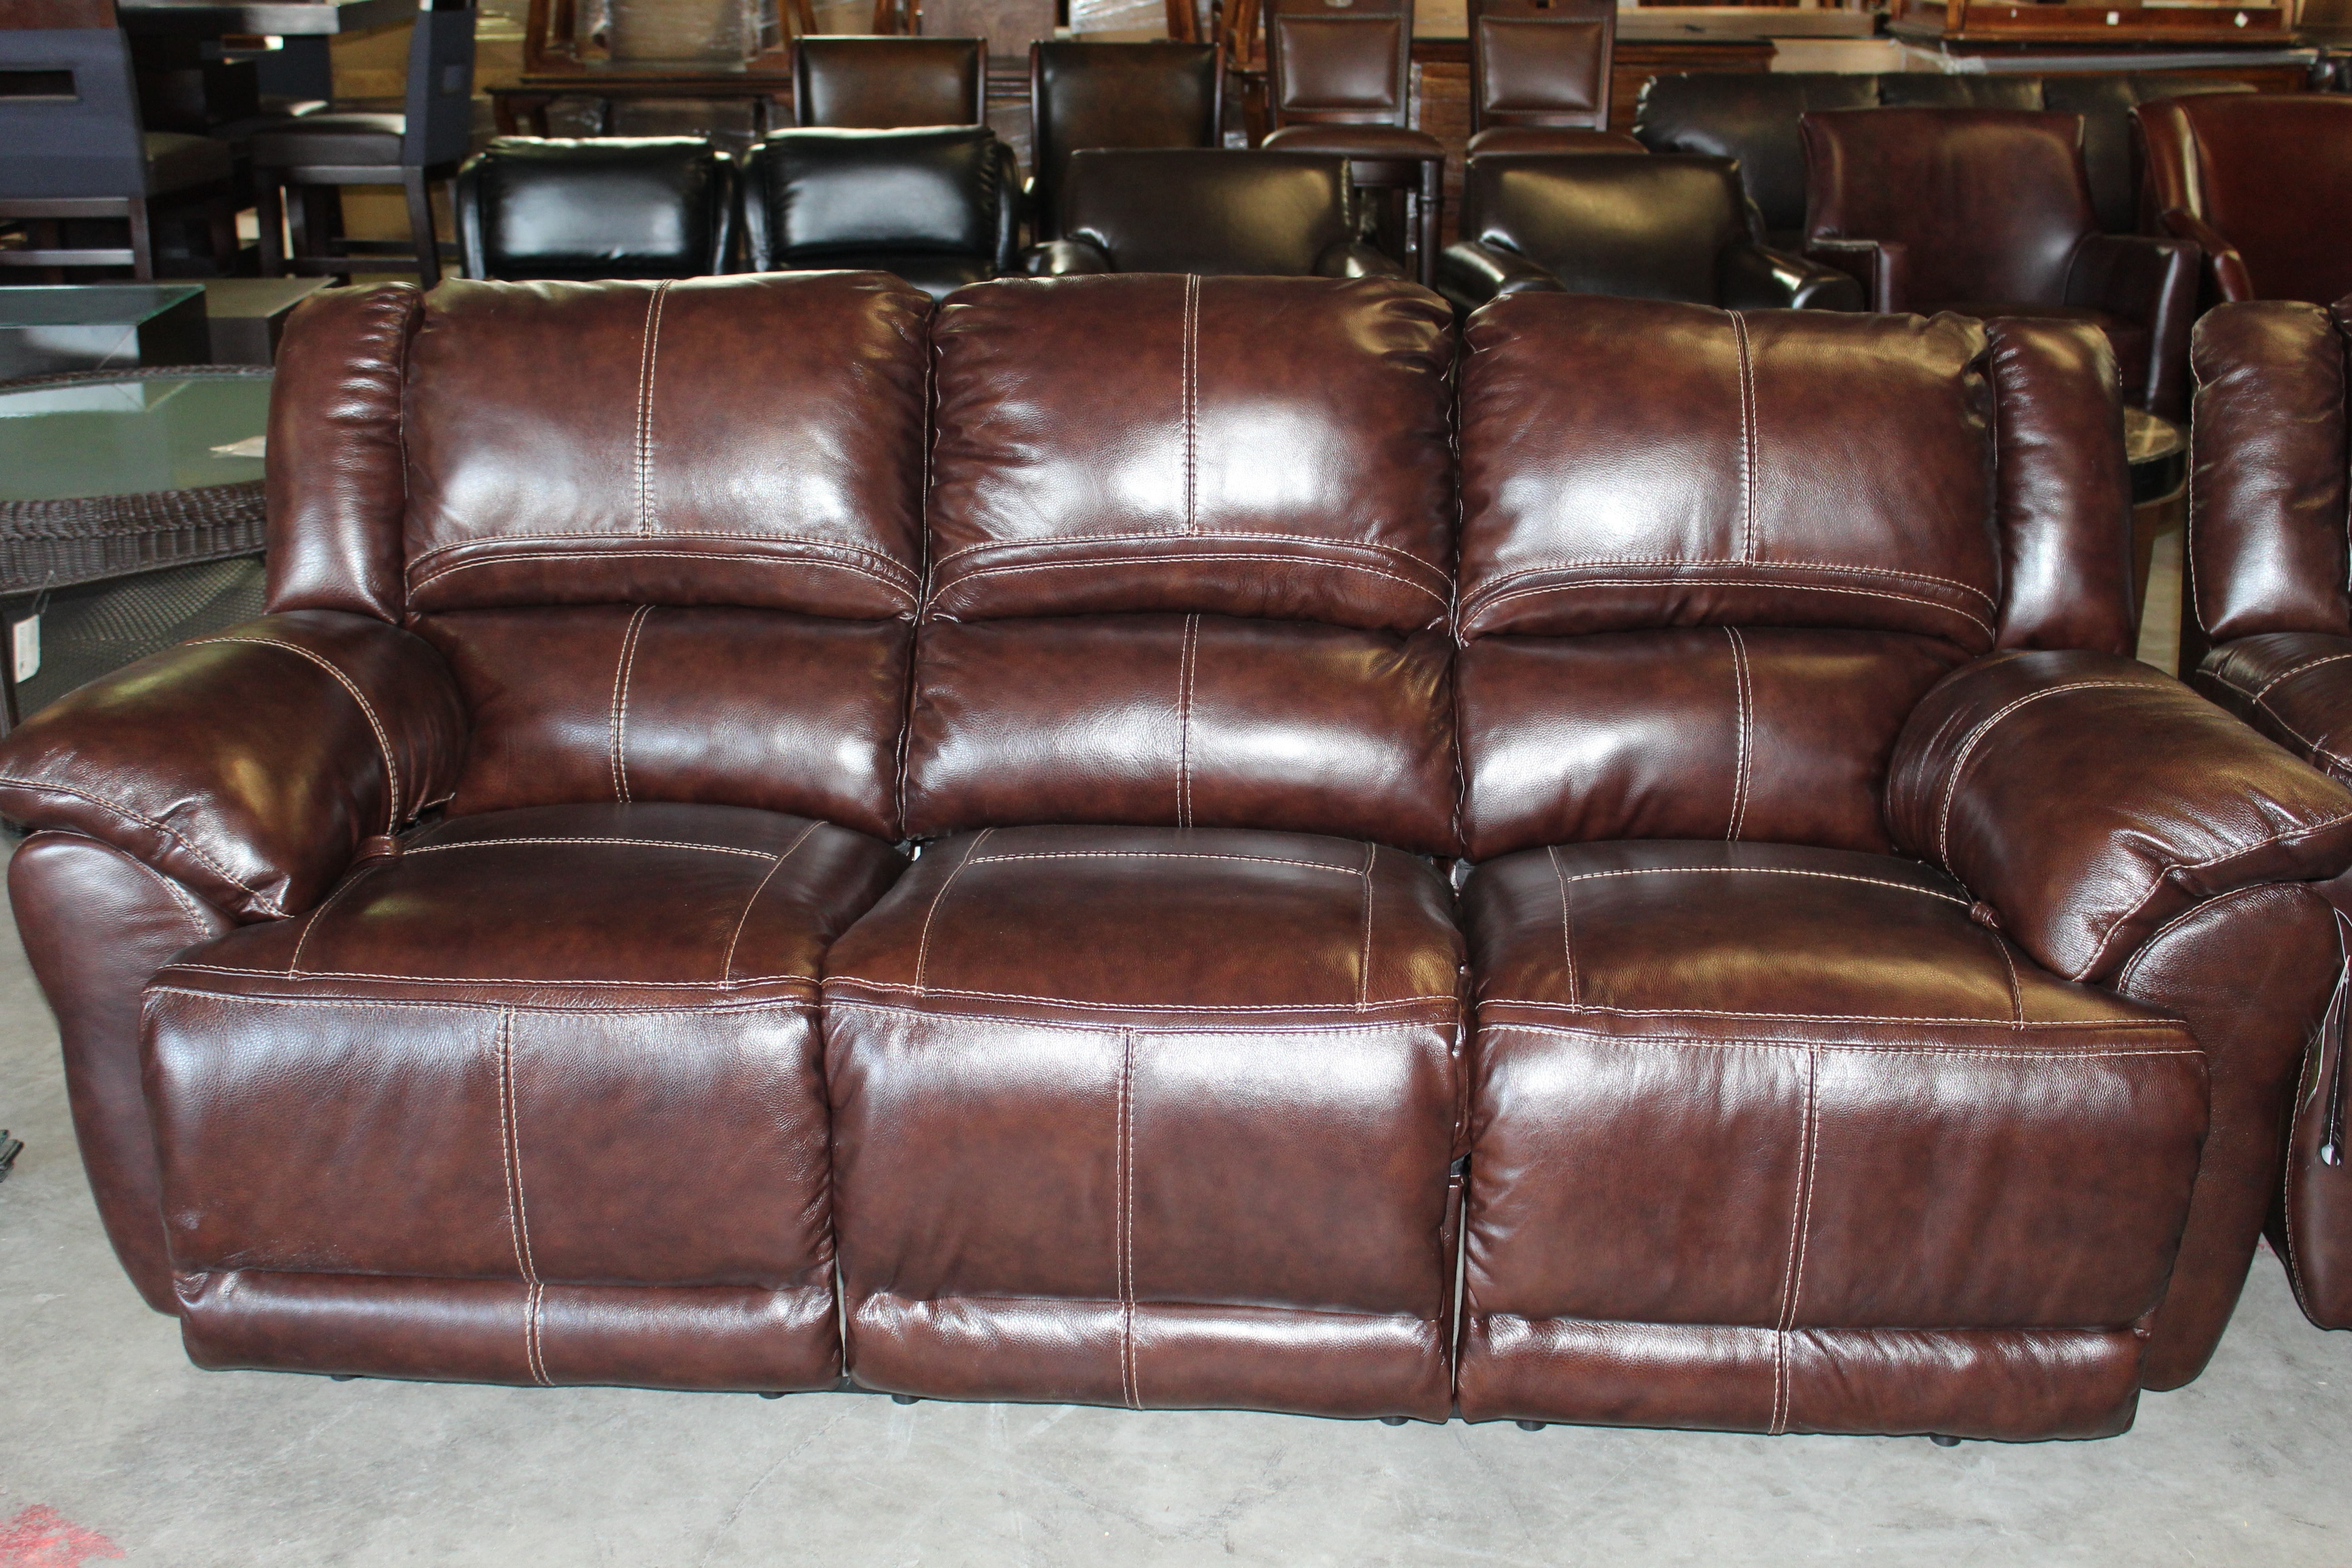 Preferred Leather Lounge Sofas Inside Leather Lounge Couch (View 11 of 15)